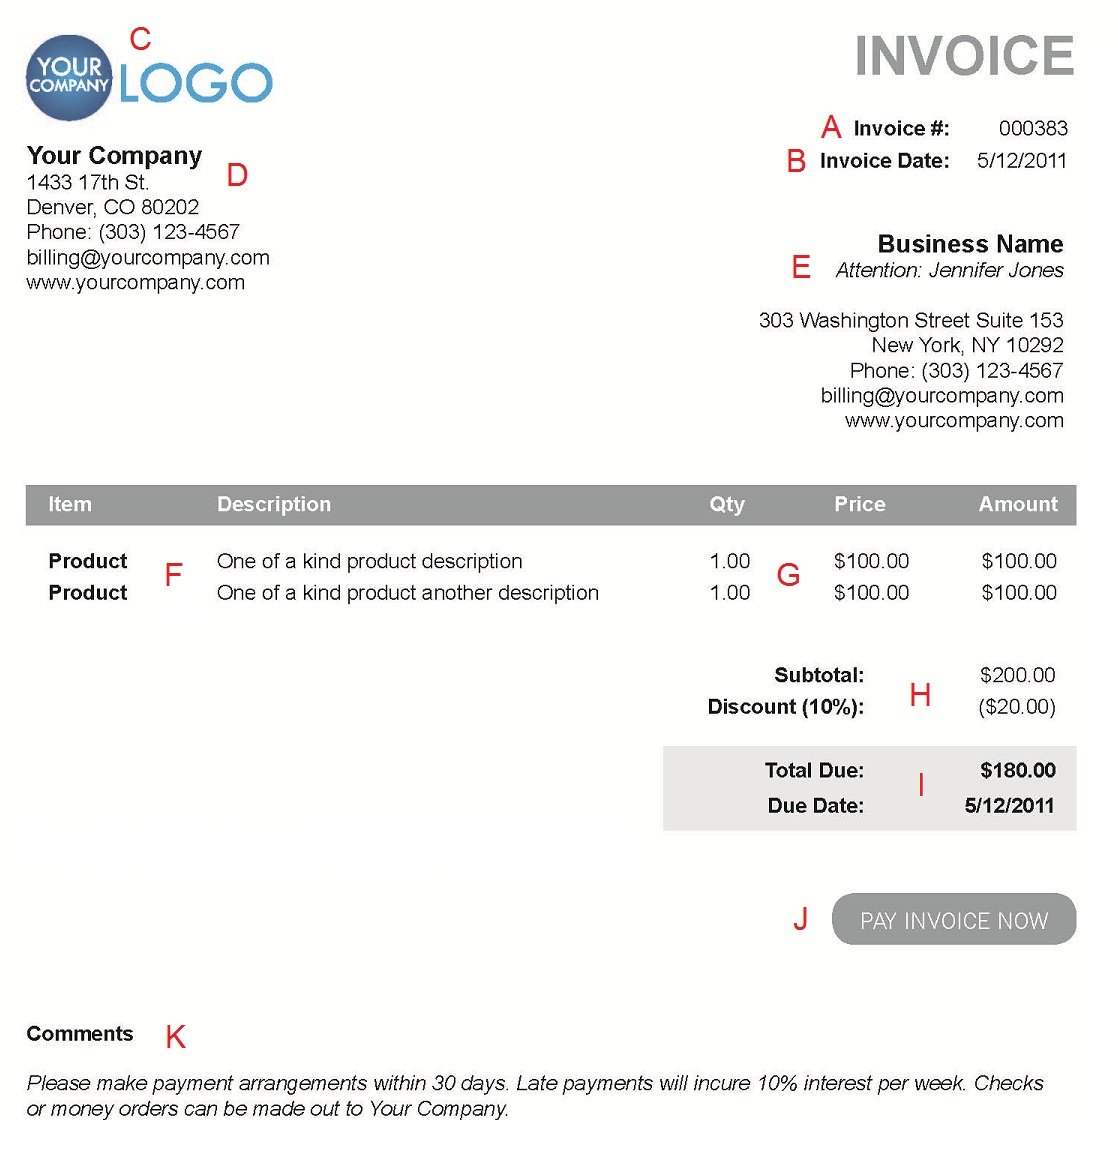 Atvingus  Surprising The  Different Sections Of An Electronic Payment Invoice With Lovely A  With Breathtaking Receipt Form Also Outlook Read Receipt In Addition Donation Receipt Template And New Mexico Gross Receipts Tax As Well As Receipt Tracker Additionally Tax Receipt From Paysimplecom With Atvingus  Lovely The  Different Sections Of An Electronic Payment Invoice With Breathtaking A  And Surprising Receipt Form Also Outlook Read Receipt In Addition Donation Receipt Template From Paysimplecom